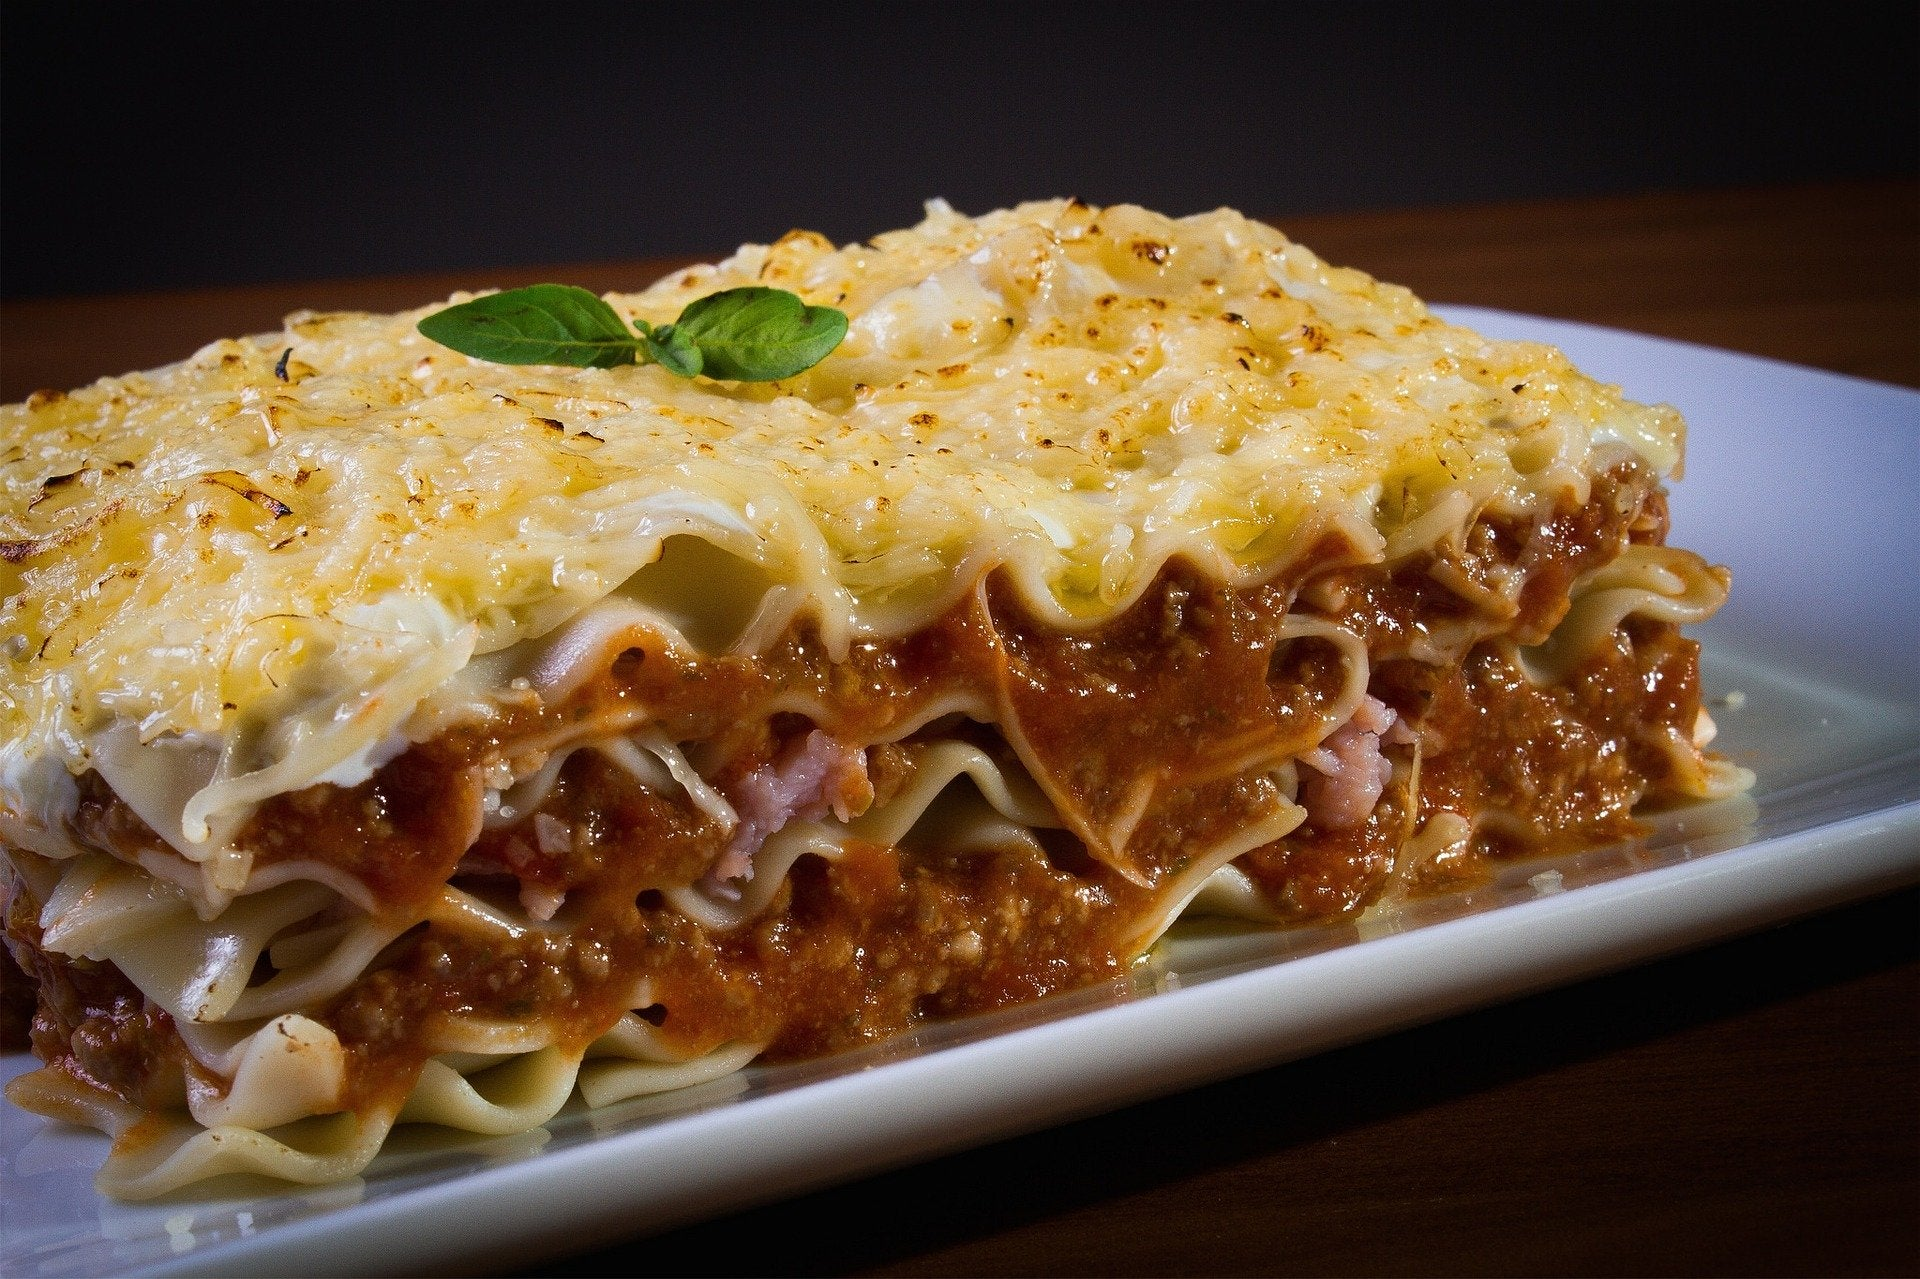 Gluten Friendly Beefy Lasagna - Real Meals